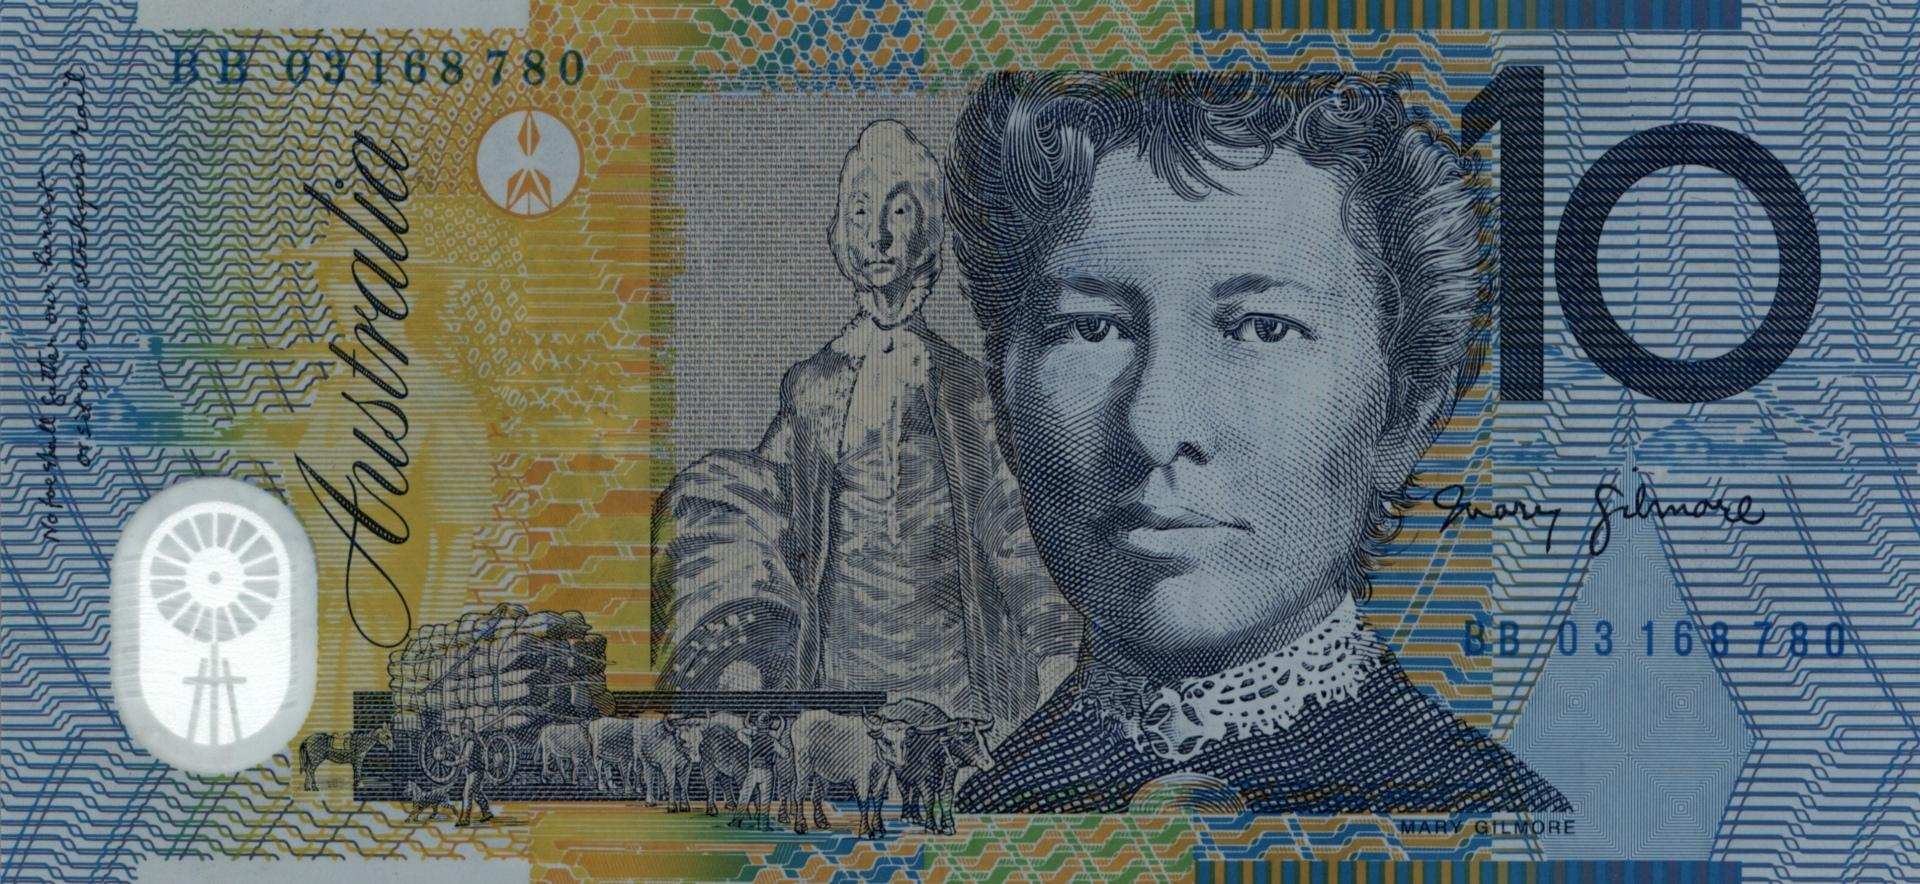 Australian Dollar wallpapers HD quality